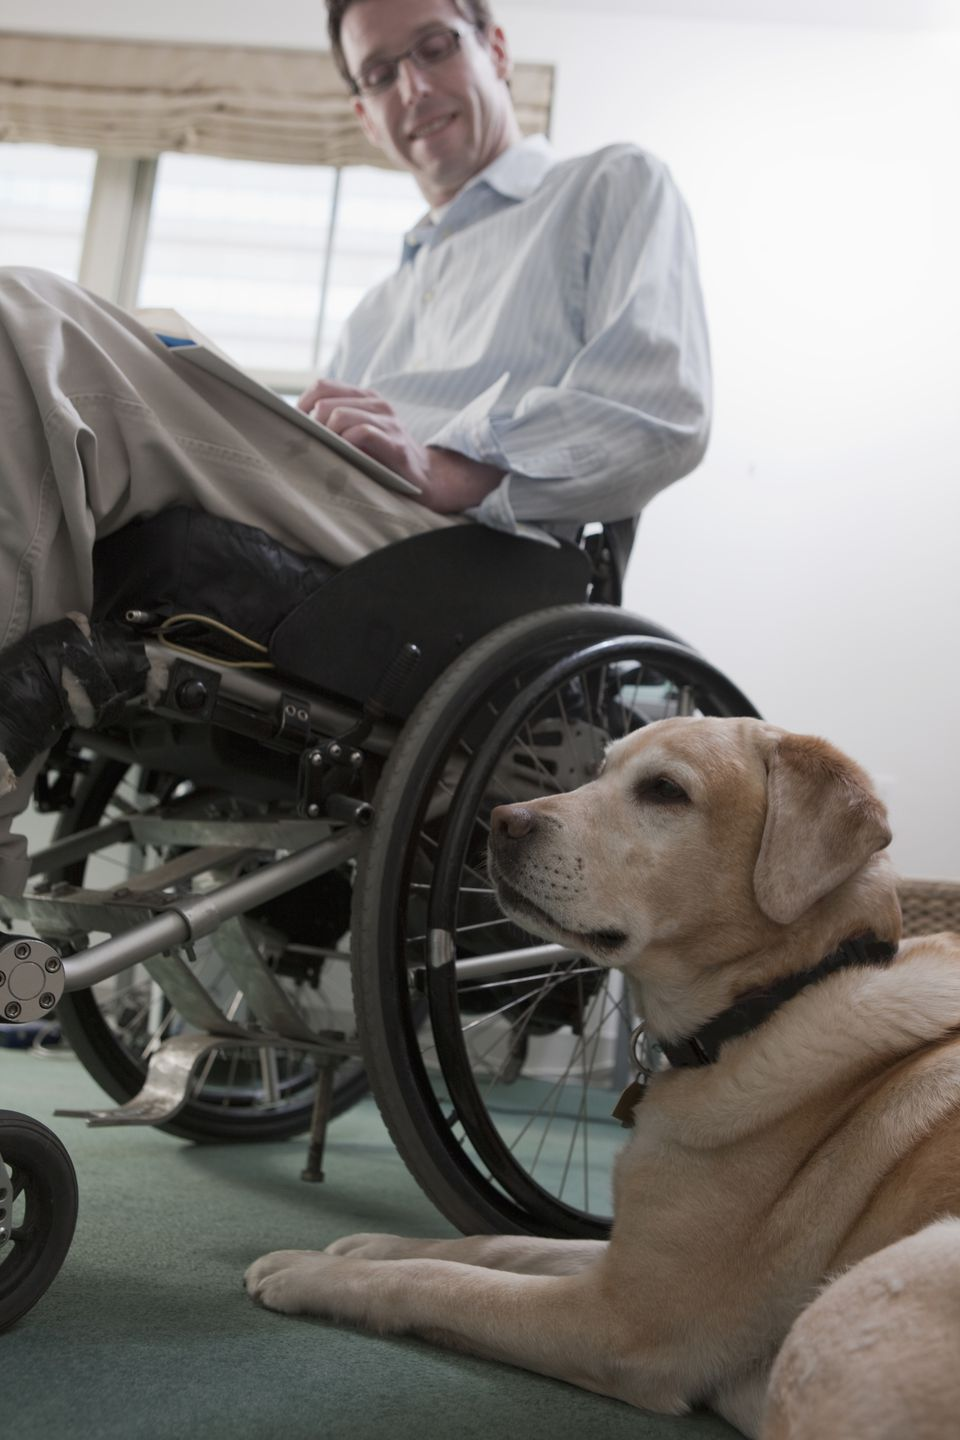 A dog sits on the floor near a man in a wheelchair.